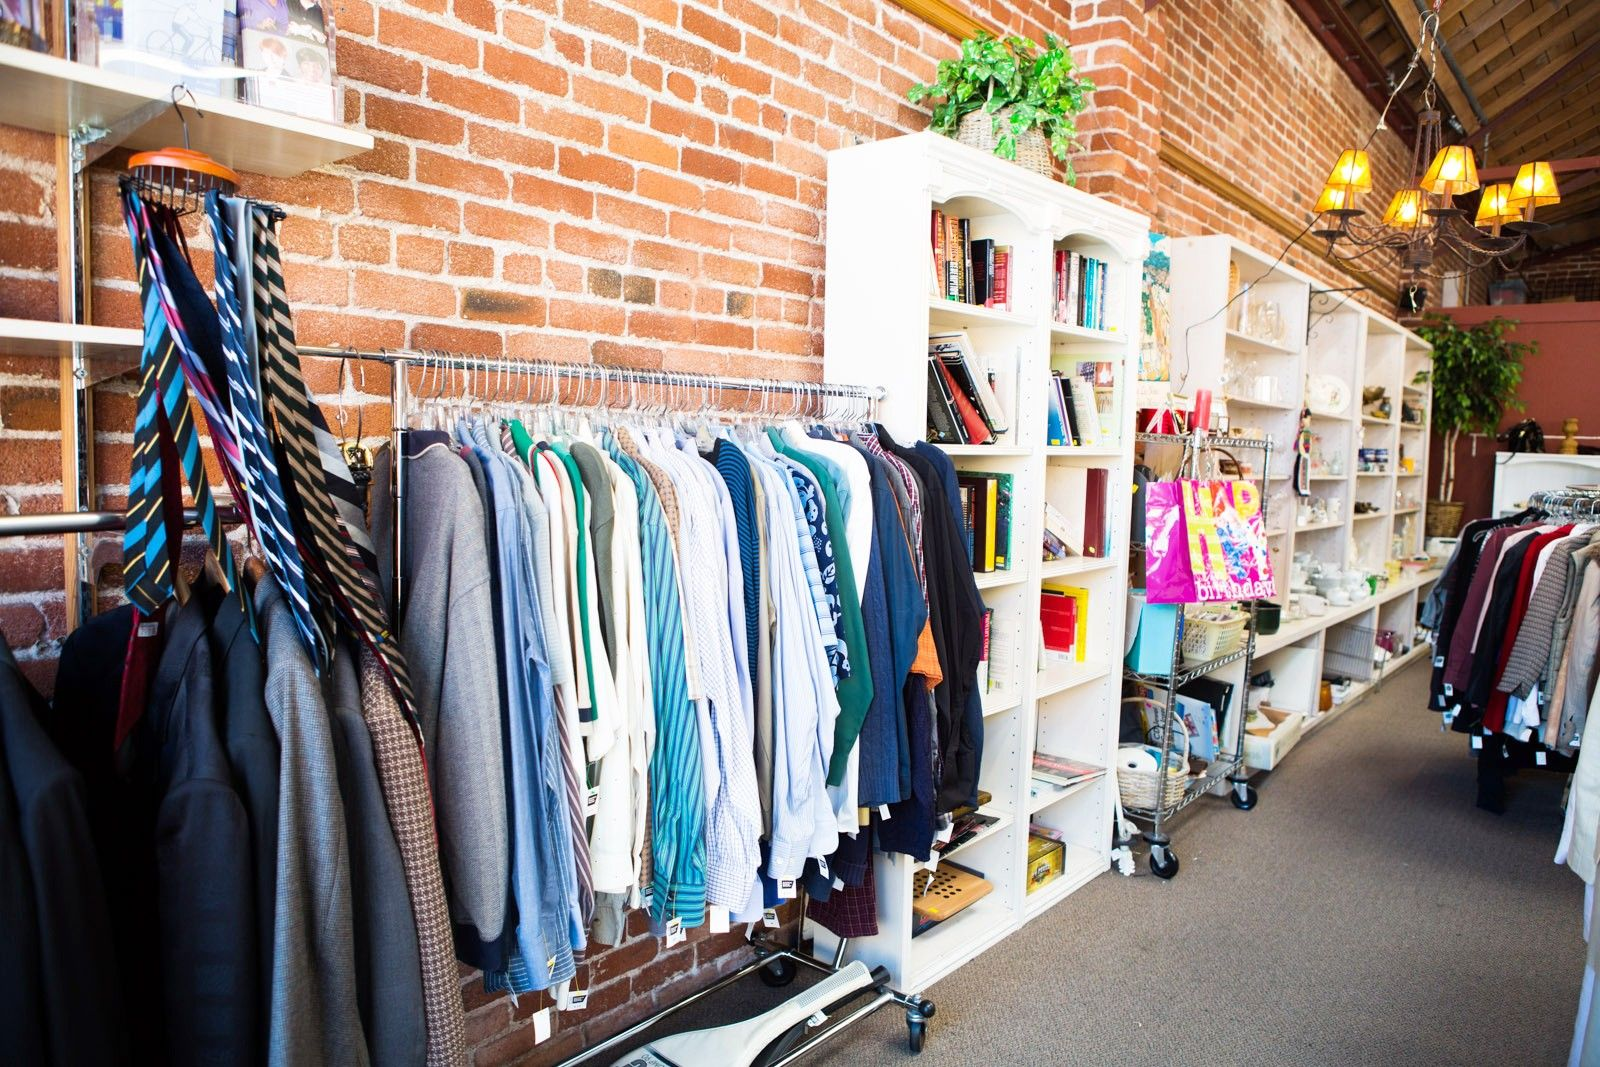 Ka-Ching! The Bay Area's 11 Best Secondhand Stores #refinery29  http://www.refinery29.com/2013/06/48377/thrift-stores-san-francisco#slide-8  American Cancer Discovery Shop  Feeling reminiscent of shopping with your mom? This is your place. The vibe is so utterly motherly, you can't help but feel warm and fuzzy inside. It even smells like her perfume! But, if you can part the seas of J.Jill and early 2000s Banana Republic, you may surprise yourself and gleam a goodie or two. How about a $12…